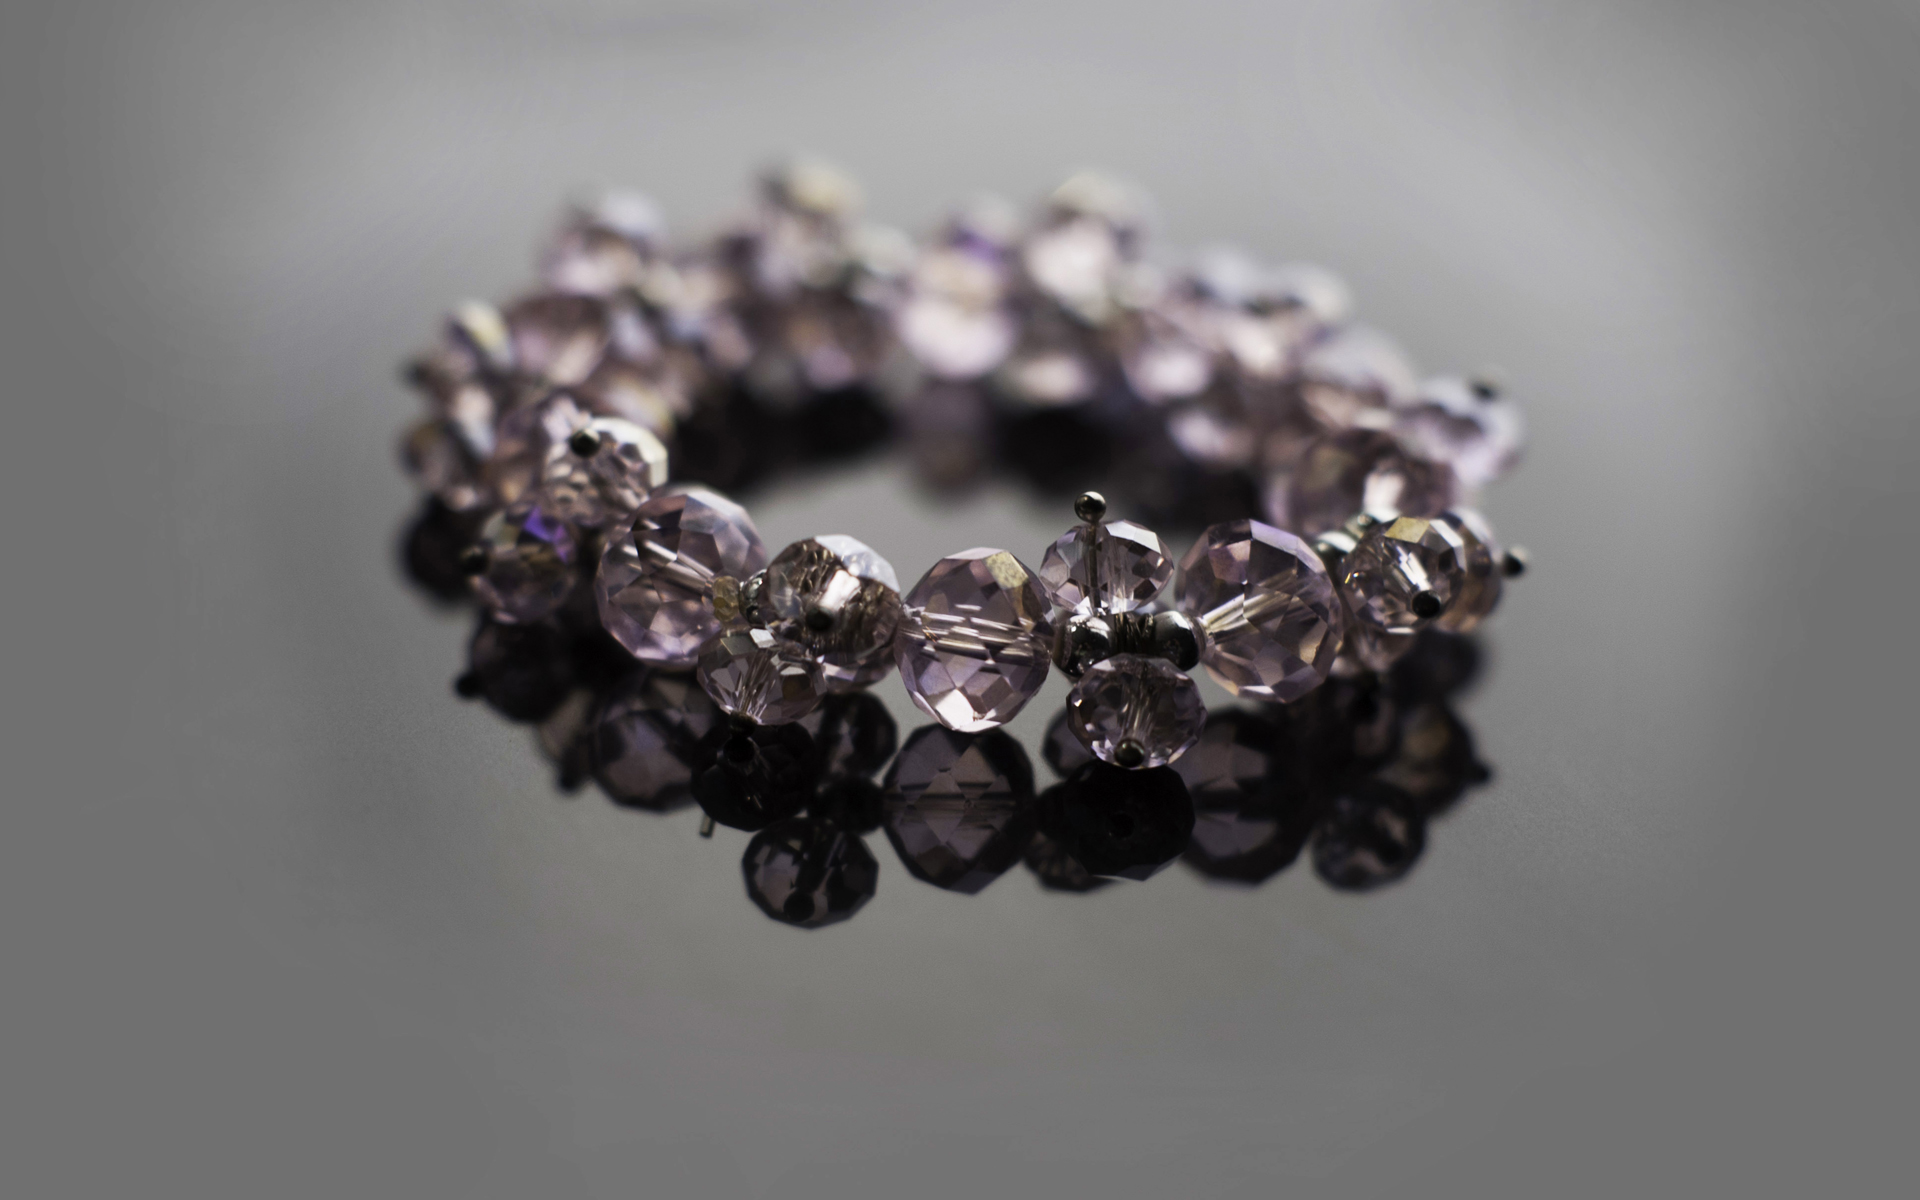 Nadine Platt Commercial Product Photography, Photograph of a Bracelet